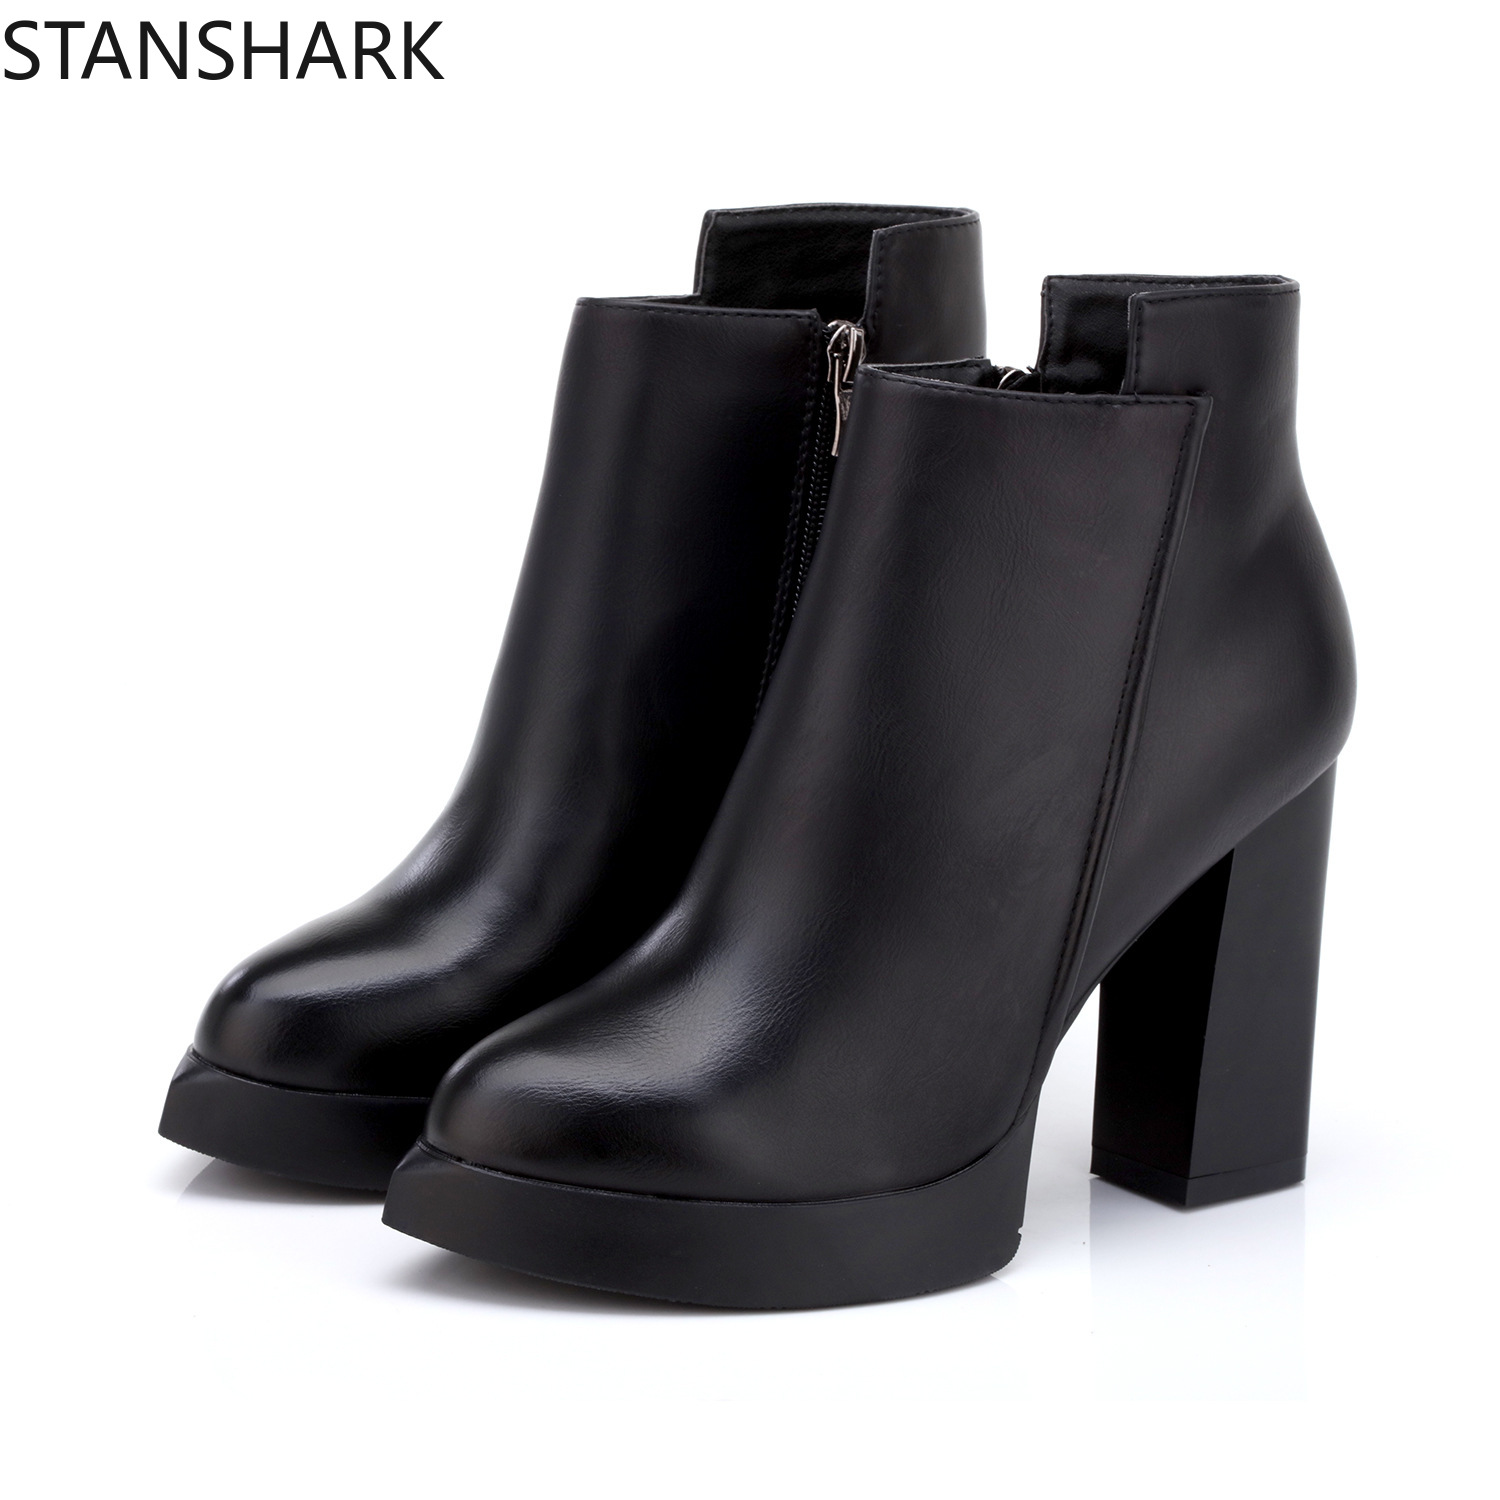 2019 New Autumn Womens Ankle Rain Boots Oxford Plain Shoes Woman Dress Zipper Shoe Formal OL High Heels Lady Black Footwear2019 New Autumn Womens Ankle Rain Boots Oxford Plain Shoes Woman Dress Zipper Shoe Formal OL High Heels Lady Black Footwear